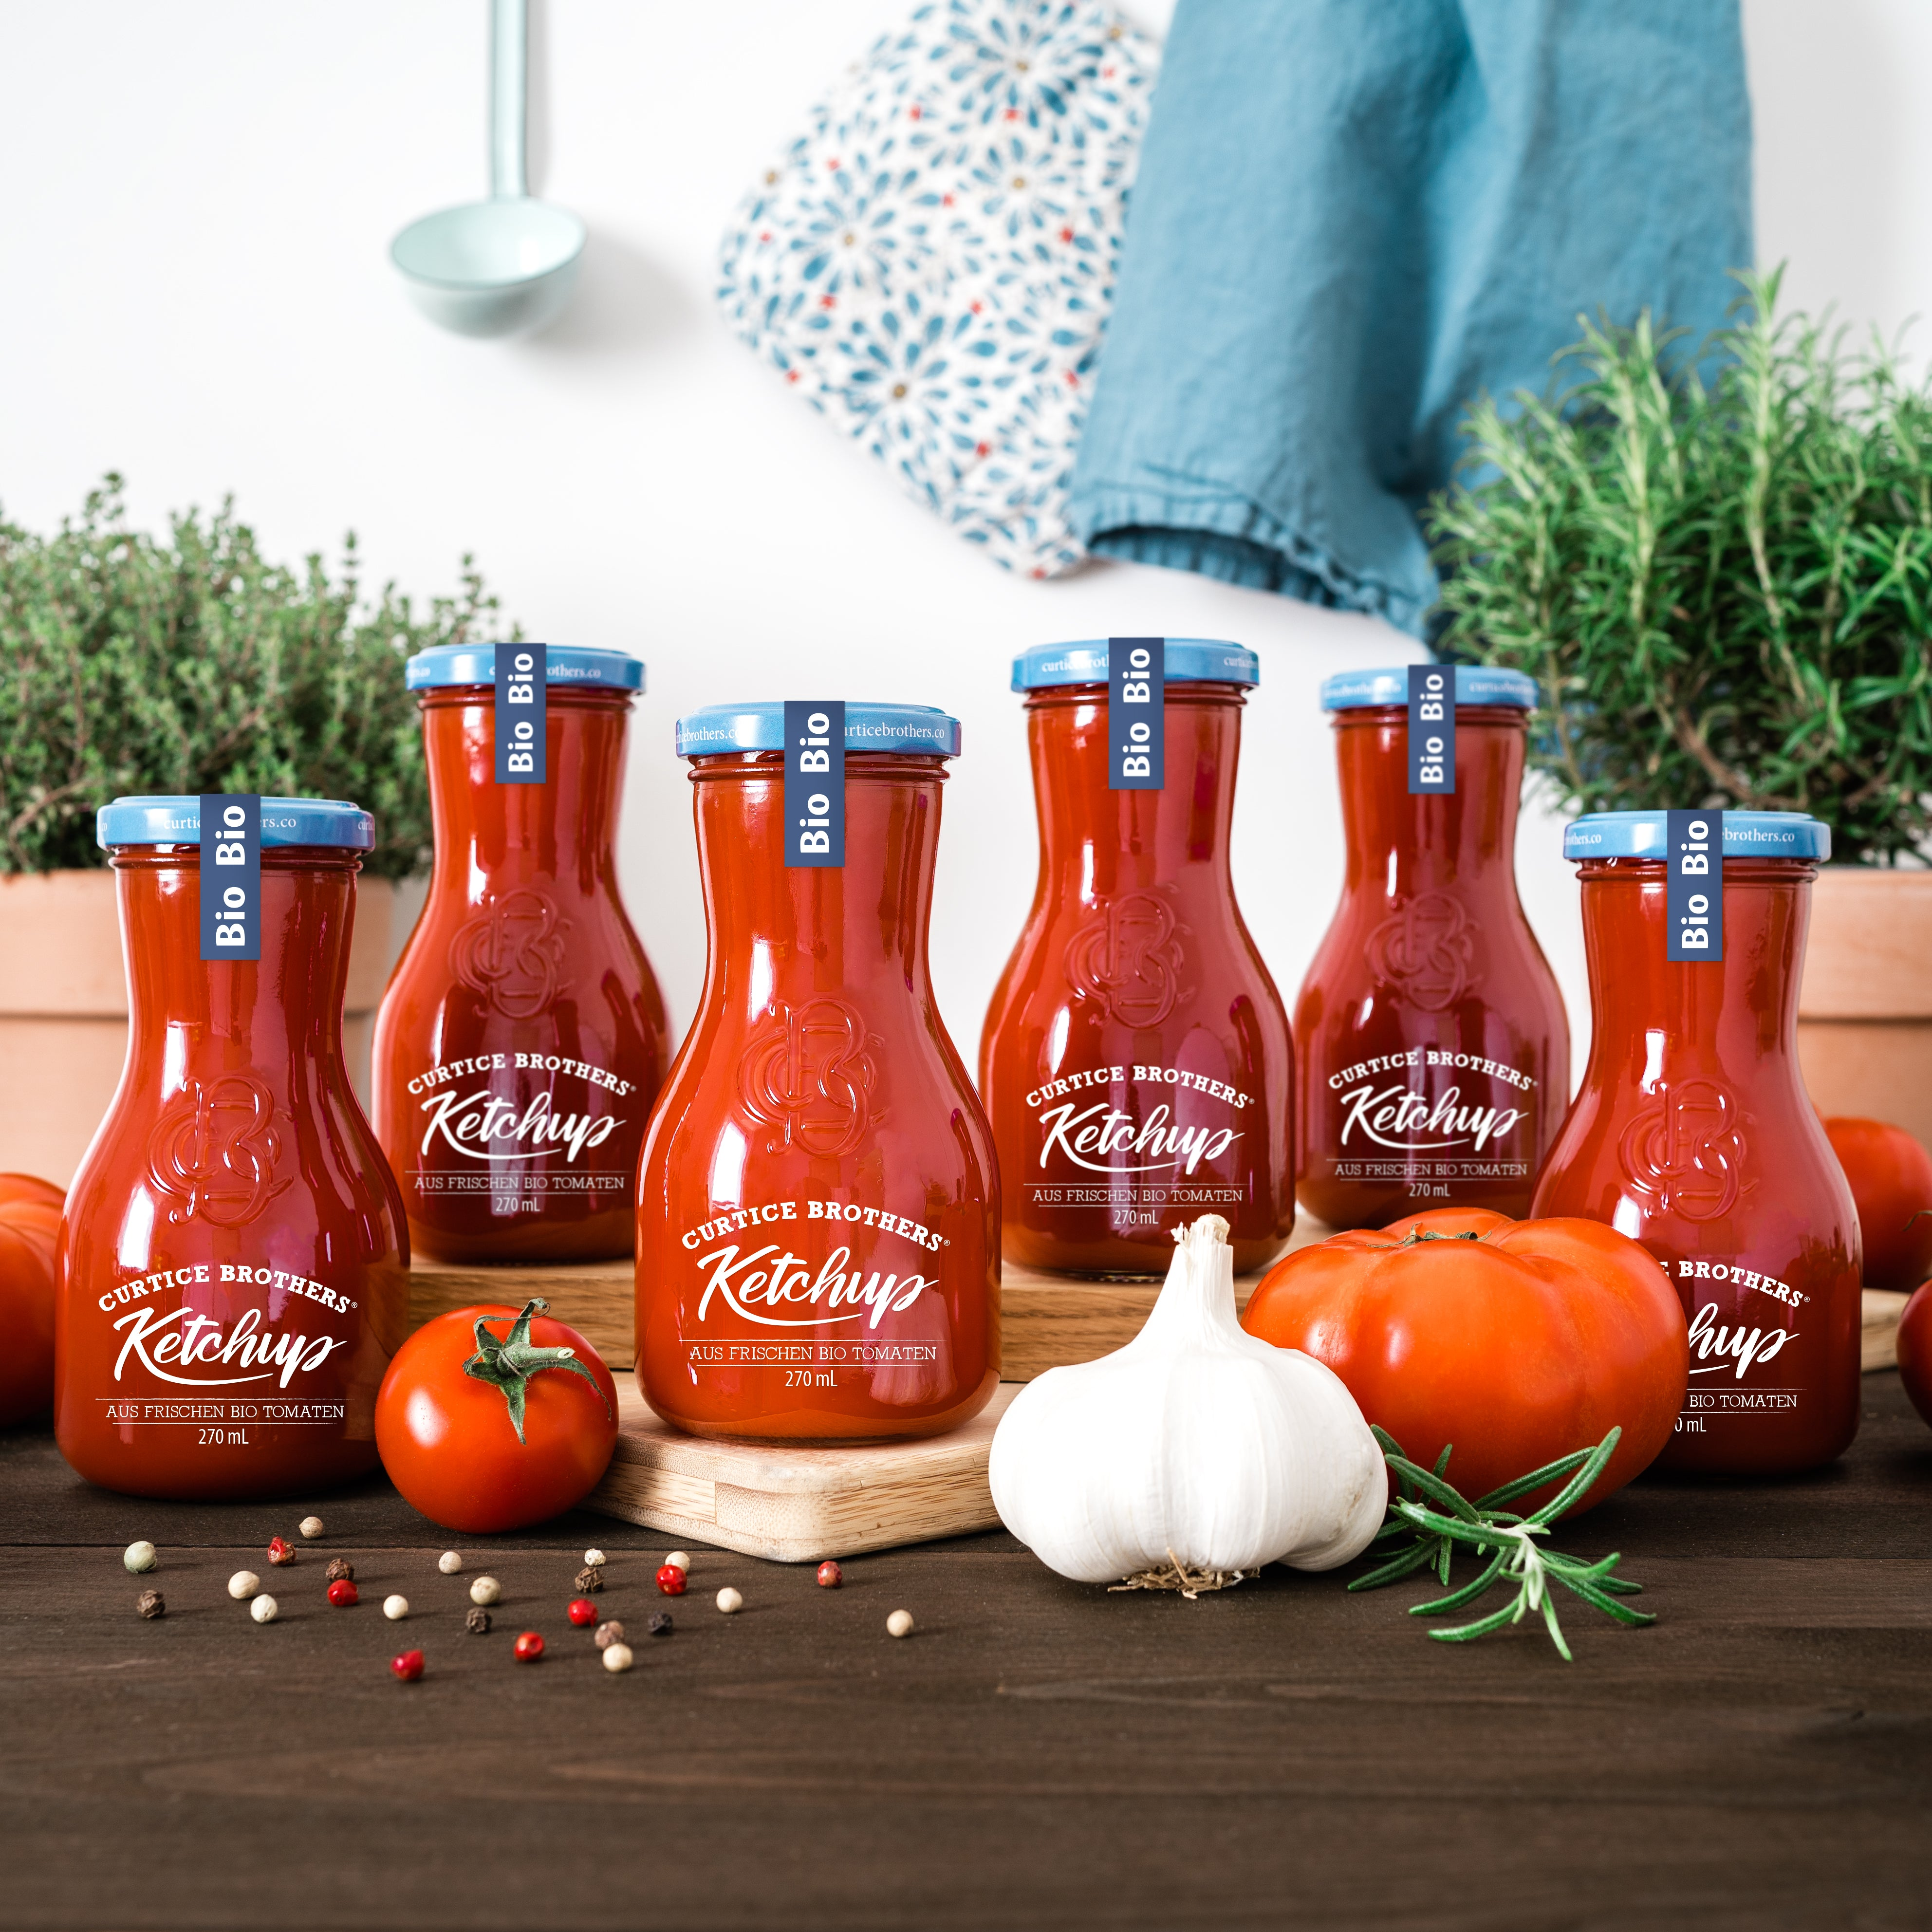 6x 270 mL Curtice Brothers Organic Tomato Ketchup